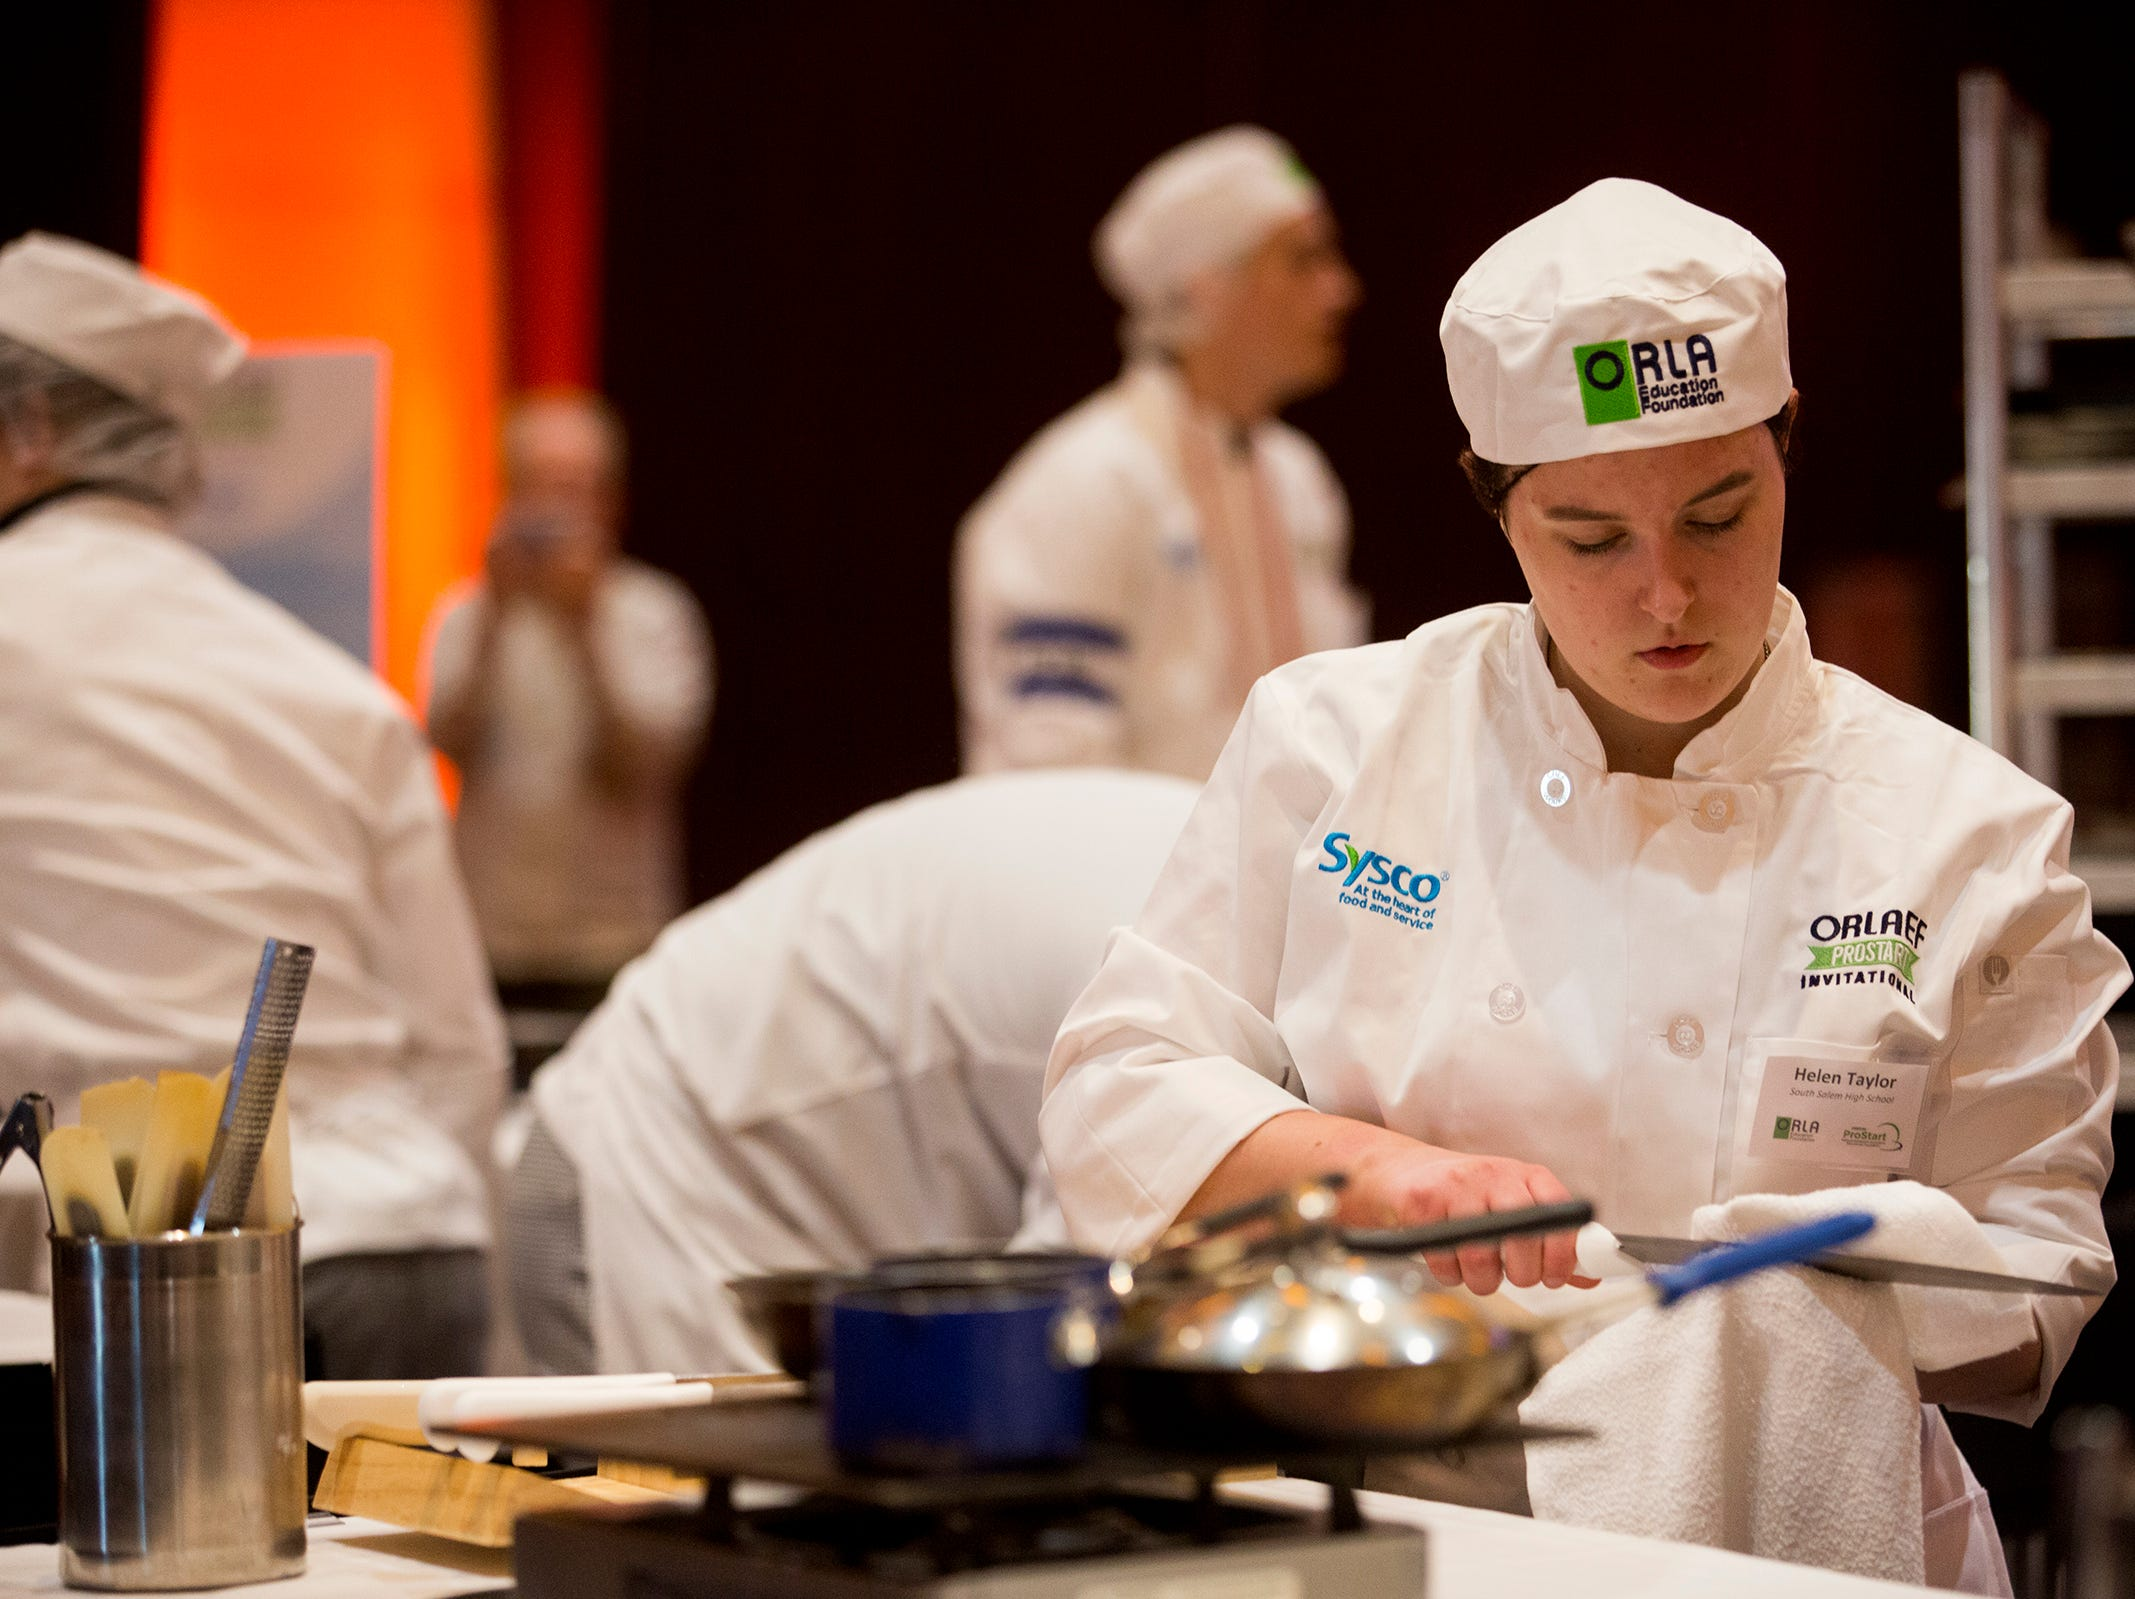 South Salem's Helen Taylor prepares knives to use during the ORLAEF's ProStart Invitational, a statewide high school culinary competition, at the Salem Convention Center on March 18, 2019.